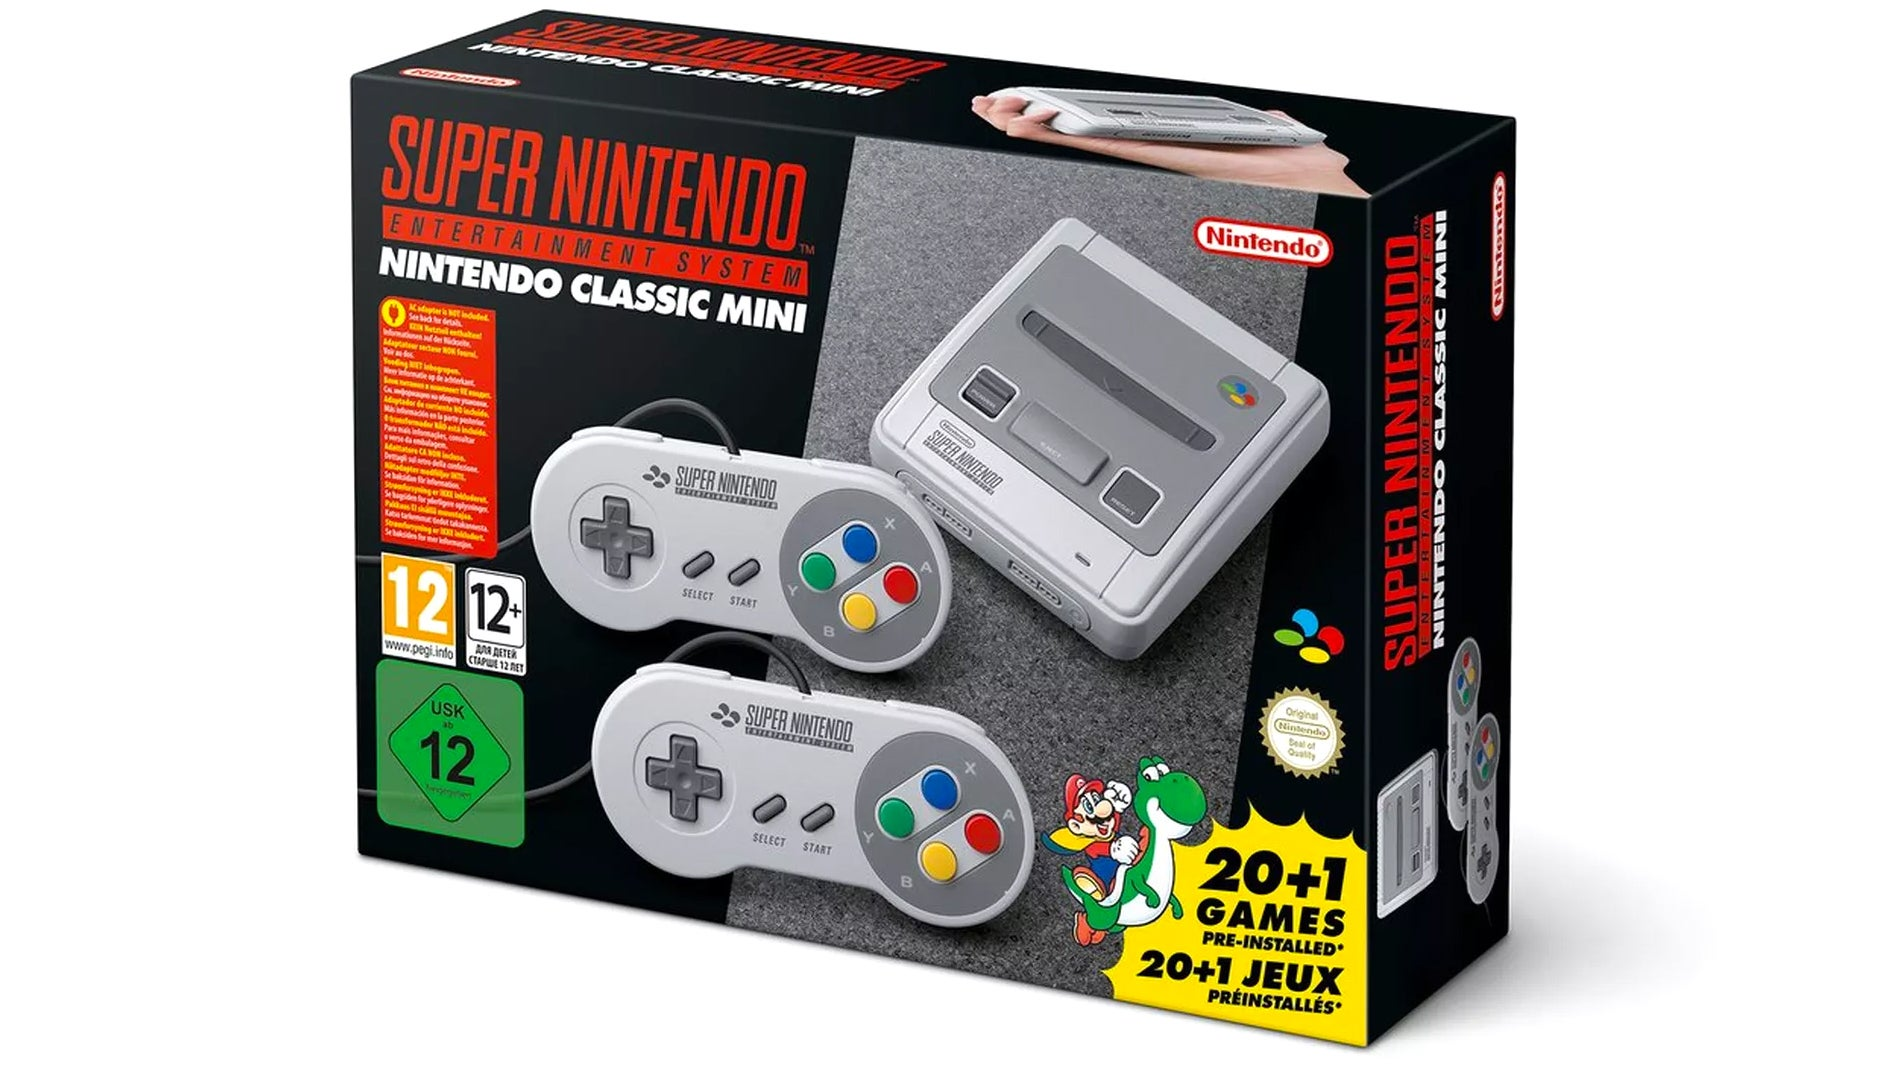 Nintendo's SNES Classic Confirmed, Releases September 29